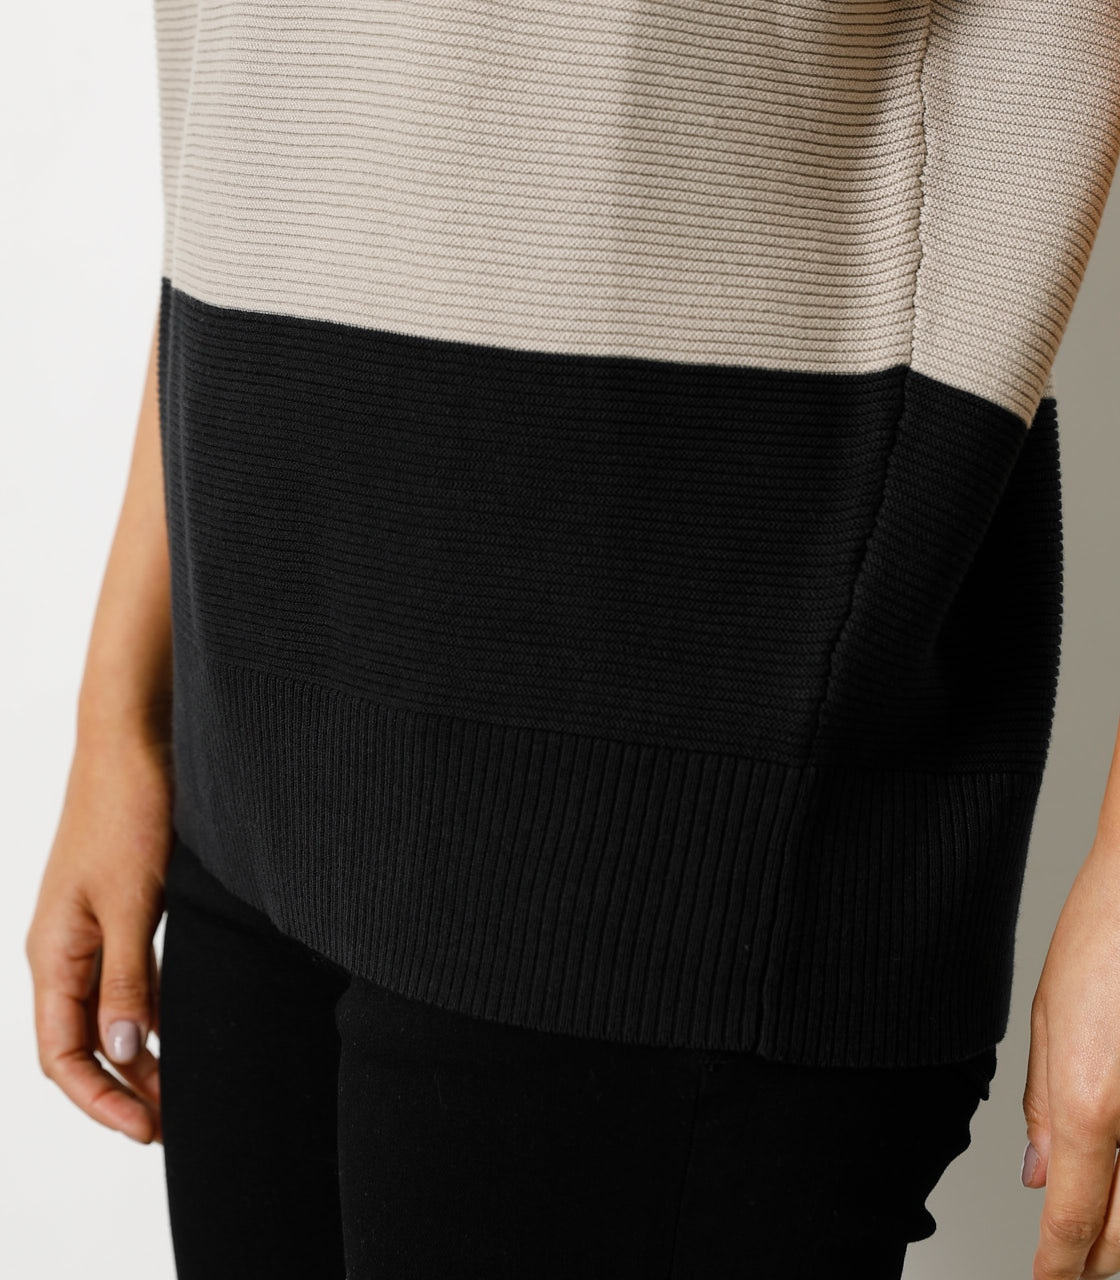 LOOSE PANEL KNIT TOP/ルーズパネルニットトップ 詳細画像 柄BEG 9